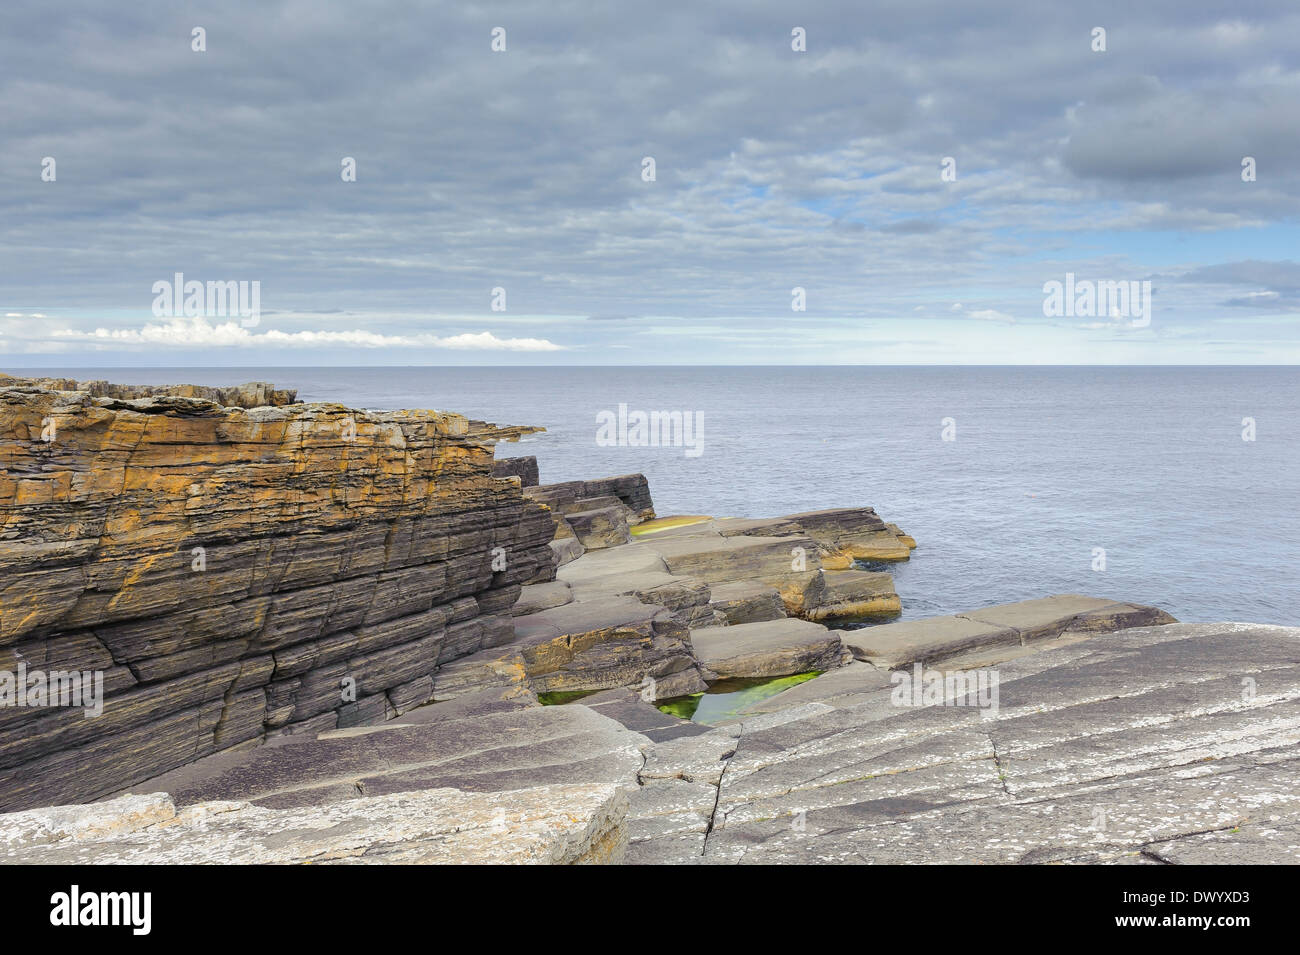 Layered sandstone rocks on the coast at Wick, Caithness, north Scotland. - Stock Image